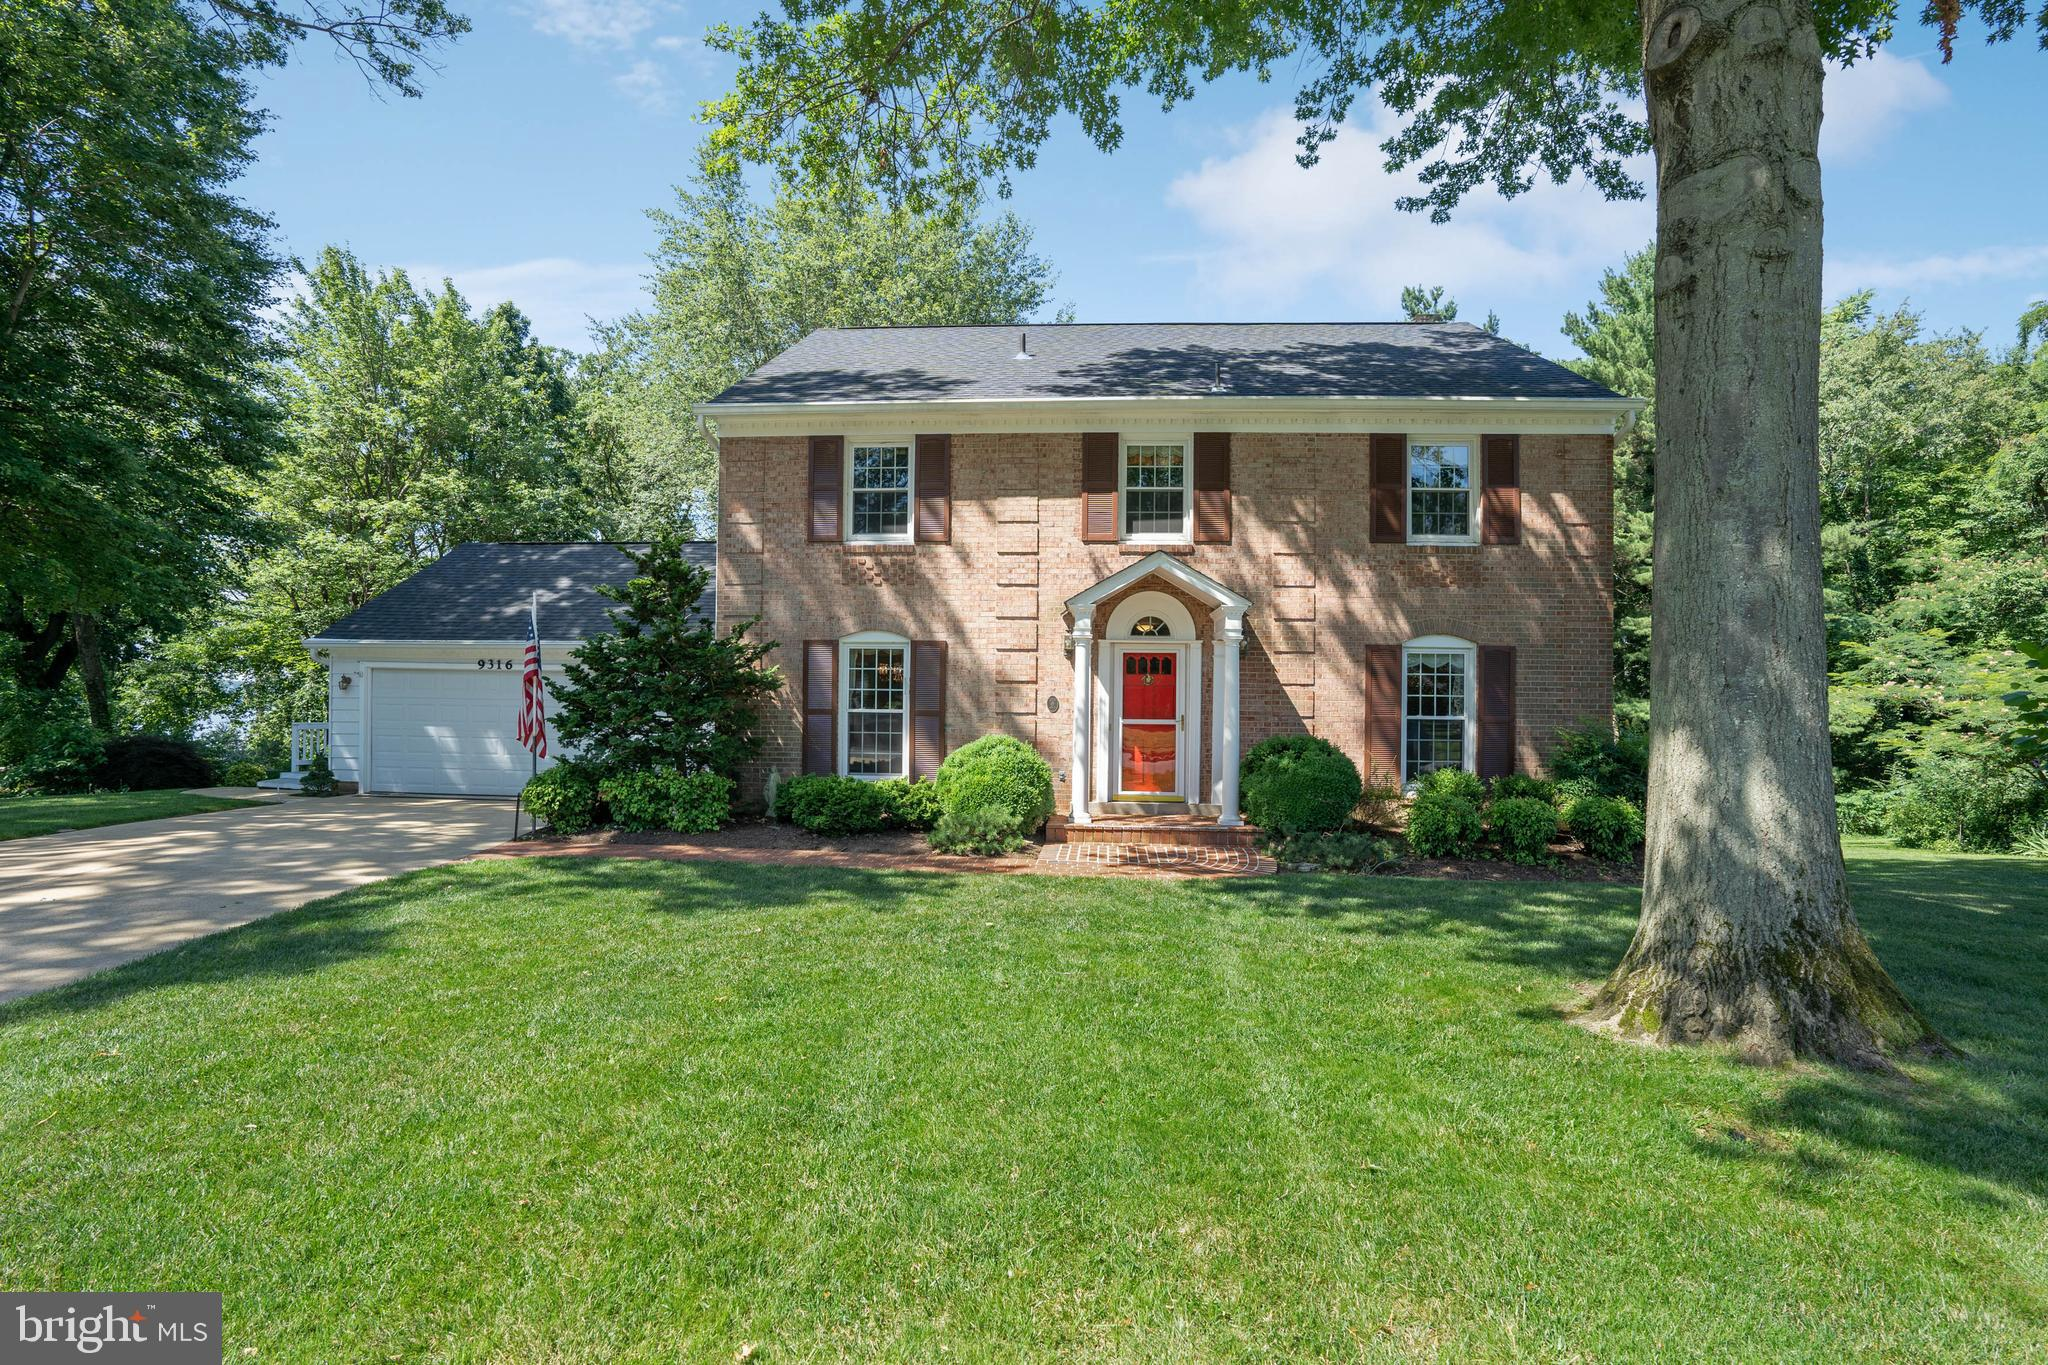 Totally unique location. One of the few area properties that provides direct Potomac river views. Enjoy the same sweeping river views that George Washington did from Mt. Vernon Estate which is just upriver from this special property!  Other special features include: beautifully manicured grounds backing to private parkland with community path leading to river. The home is an attractive three level colonial featuring 3 levels, 4 bedrooms on upper level, bright white kitchen, two car garage, walk out lower level and large deck providing elevatd  private views of woods and river. A true natural wonderland!